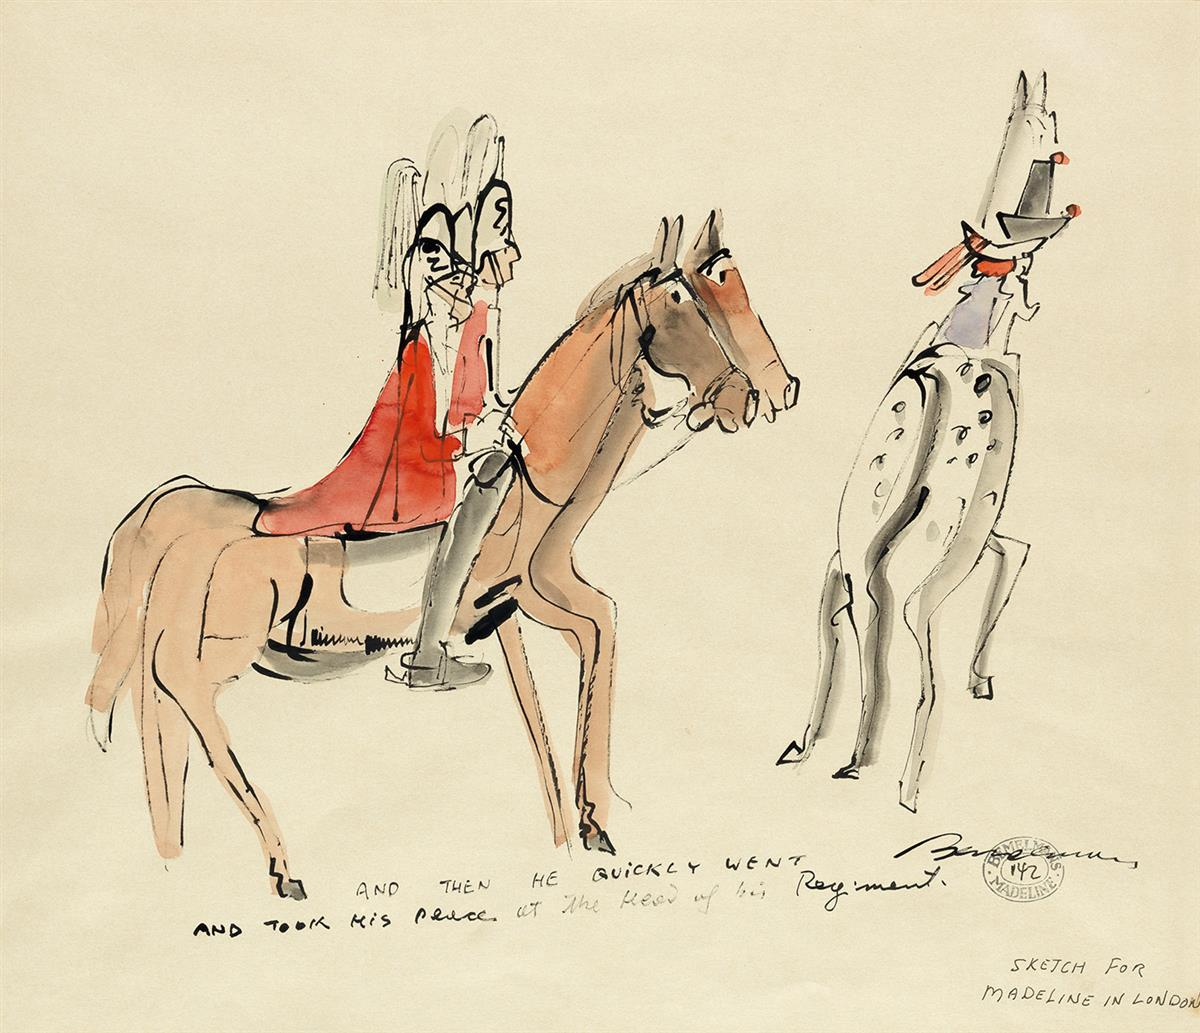 CHILDRENS LUDWIG BEMELMANS. And then he quickly went and took his place at the head of his Regiment.